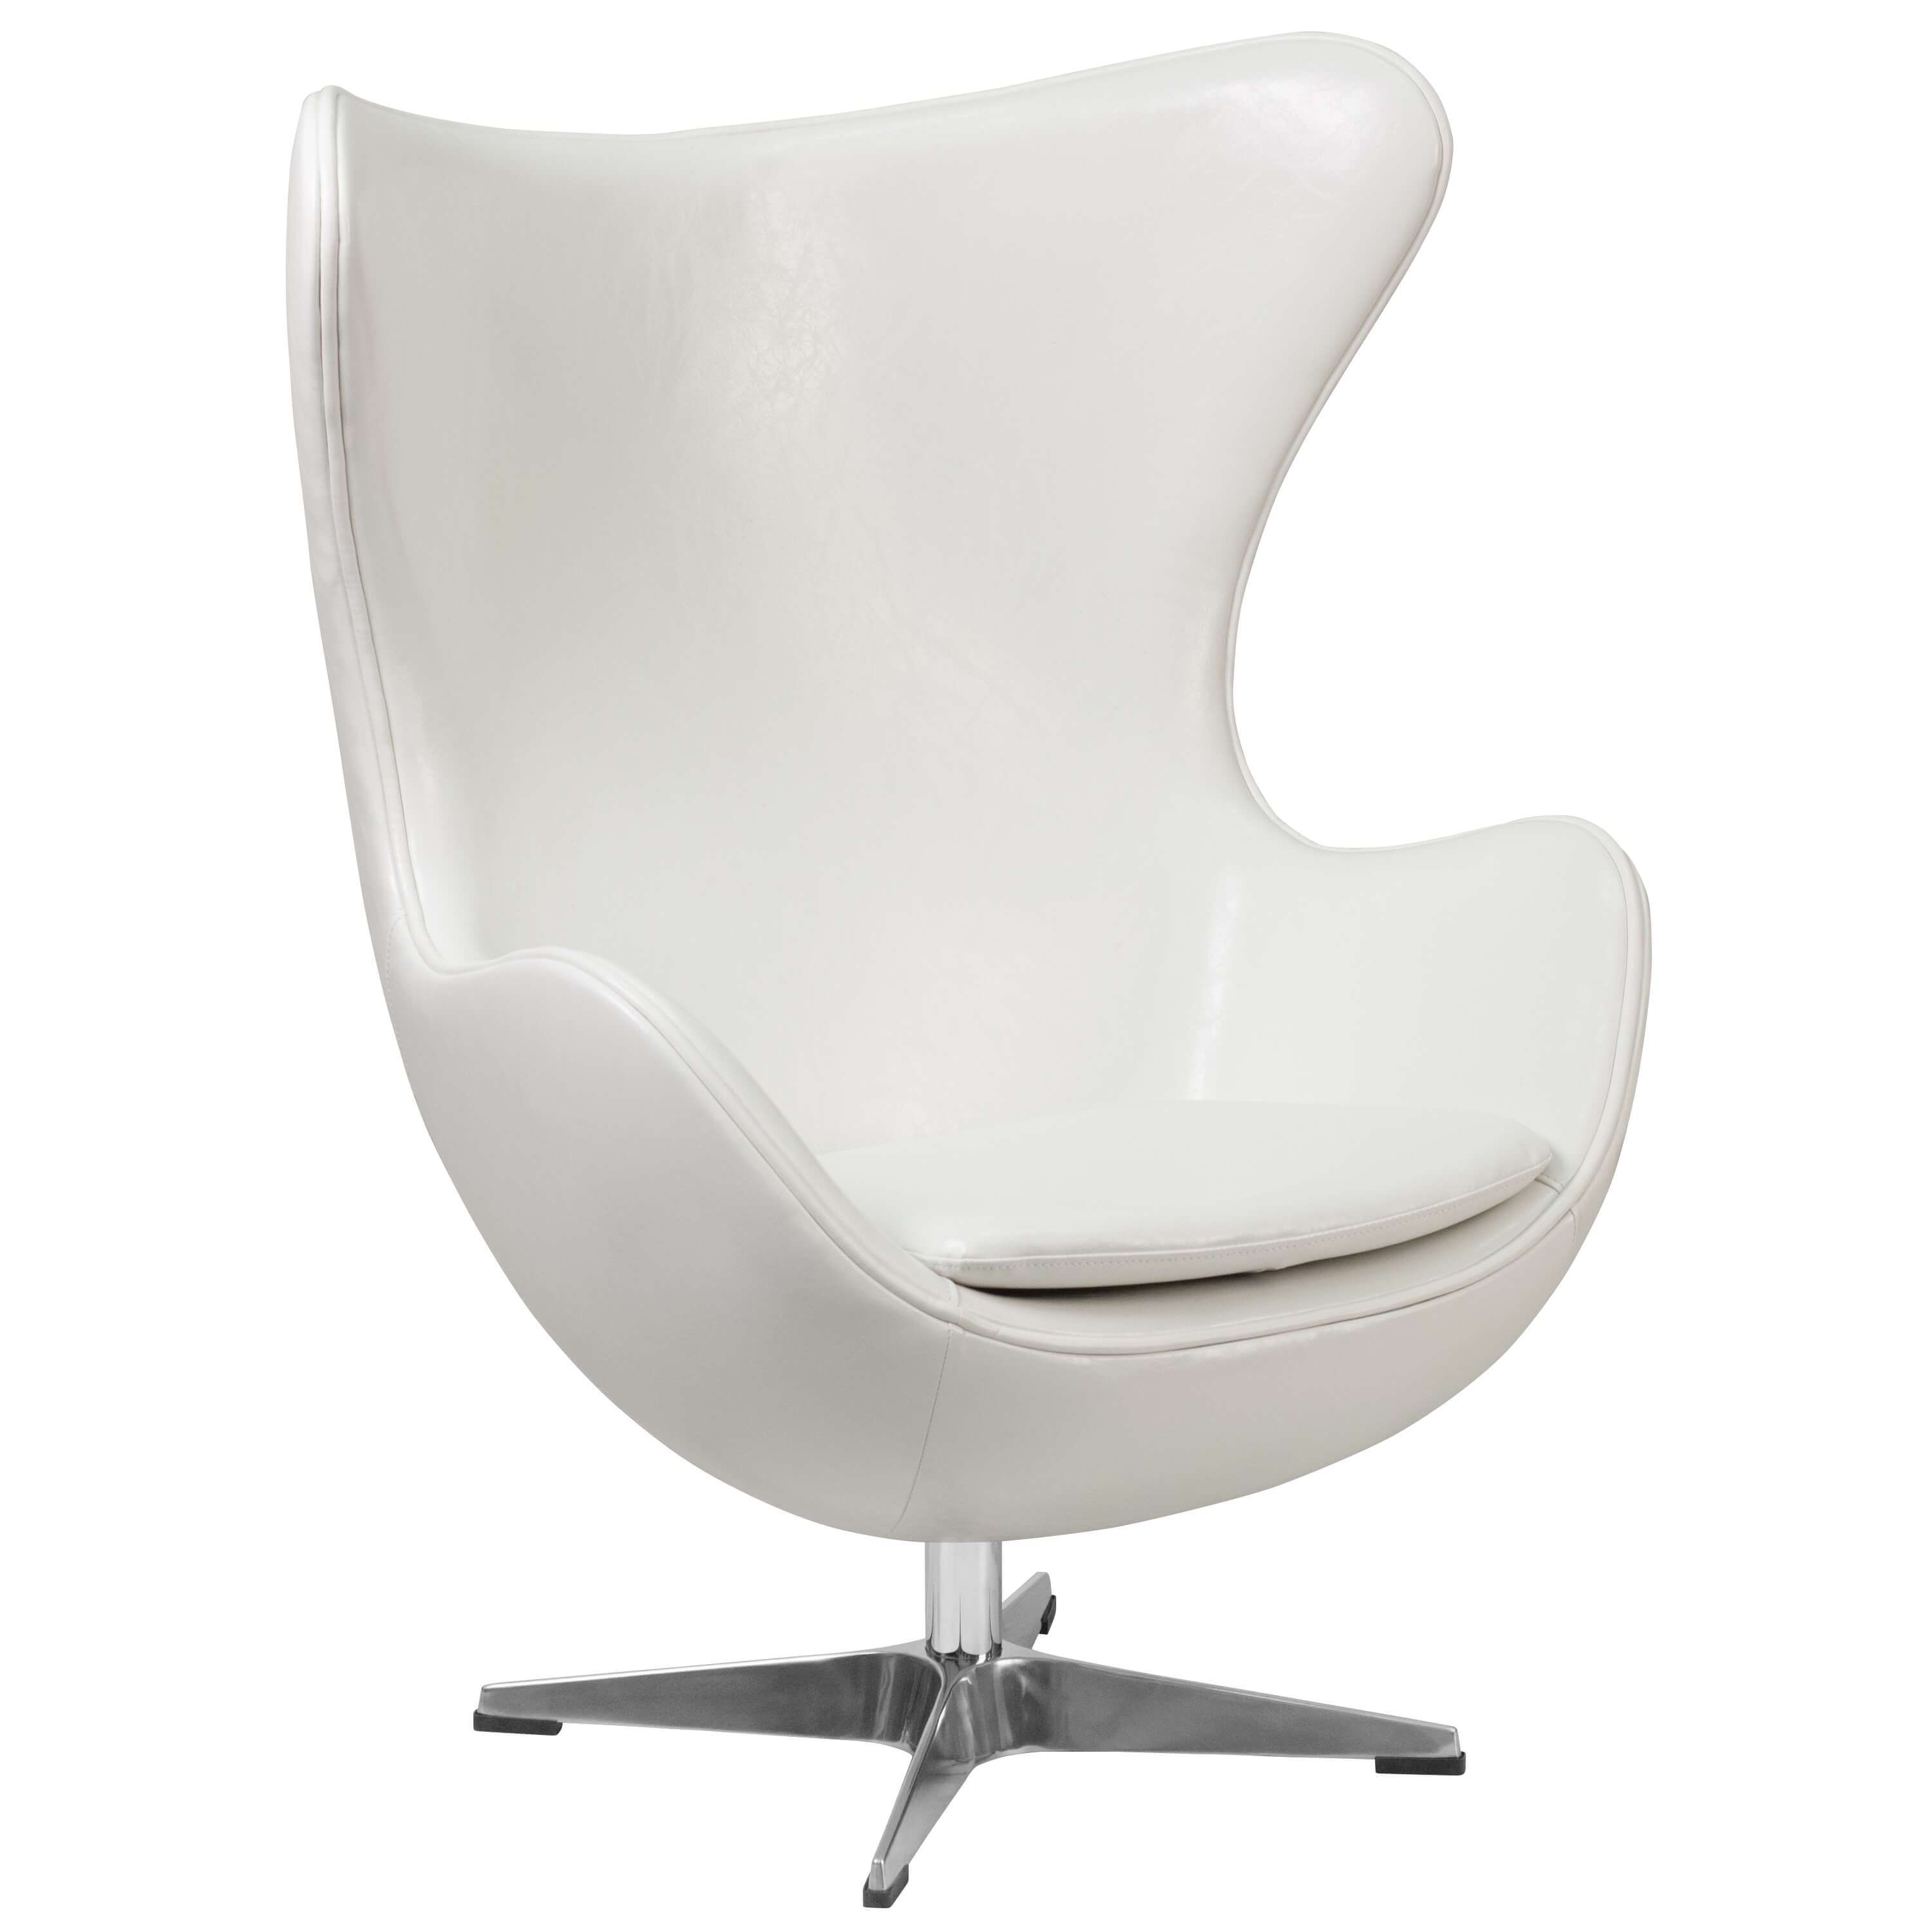 Office lounge chairs CUB ZB 10 GG ALF